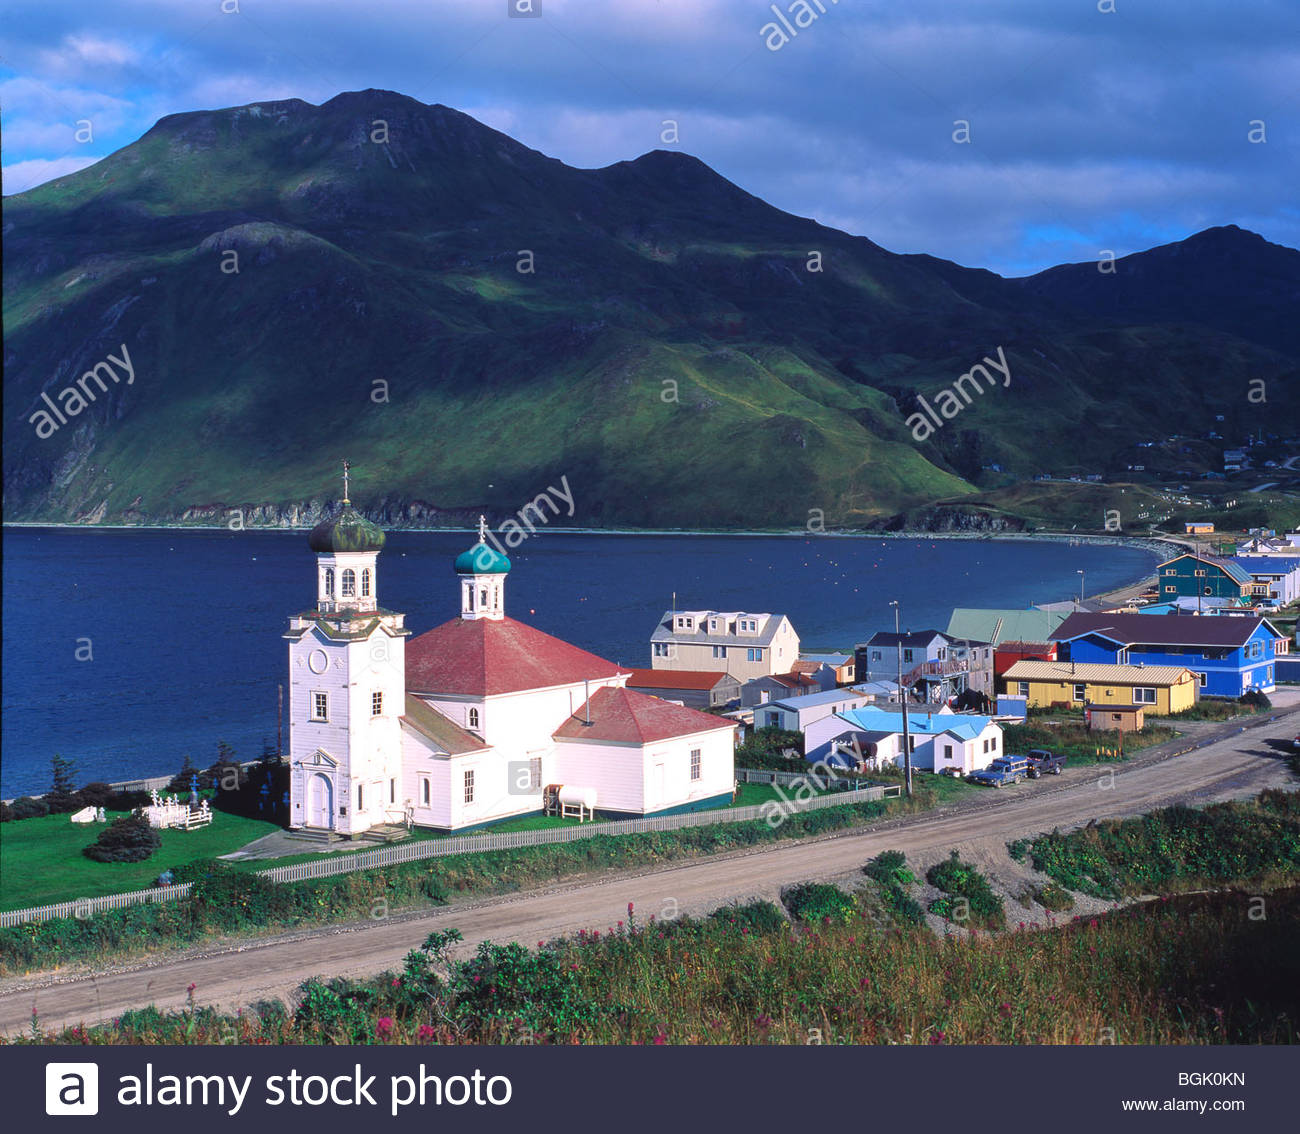 Grand aleutian hotel in dutch harbor - Eastern Aleutian Islands Holy Ascention Russian Orthodox Church Unalaska Near Dutch Harbor